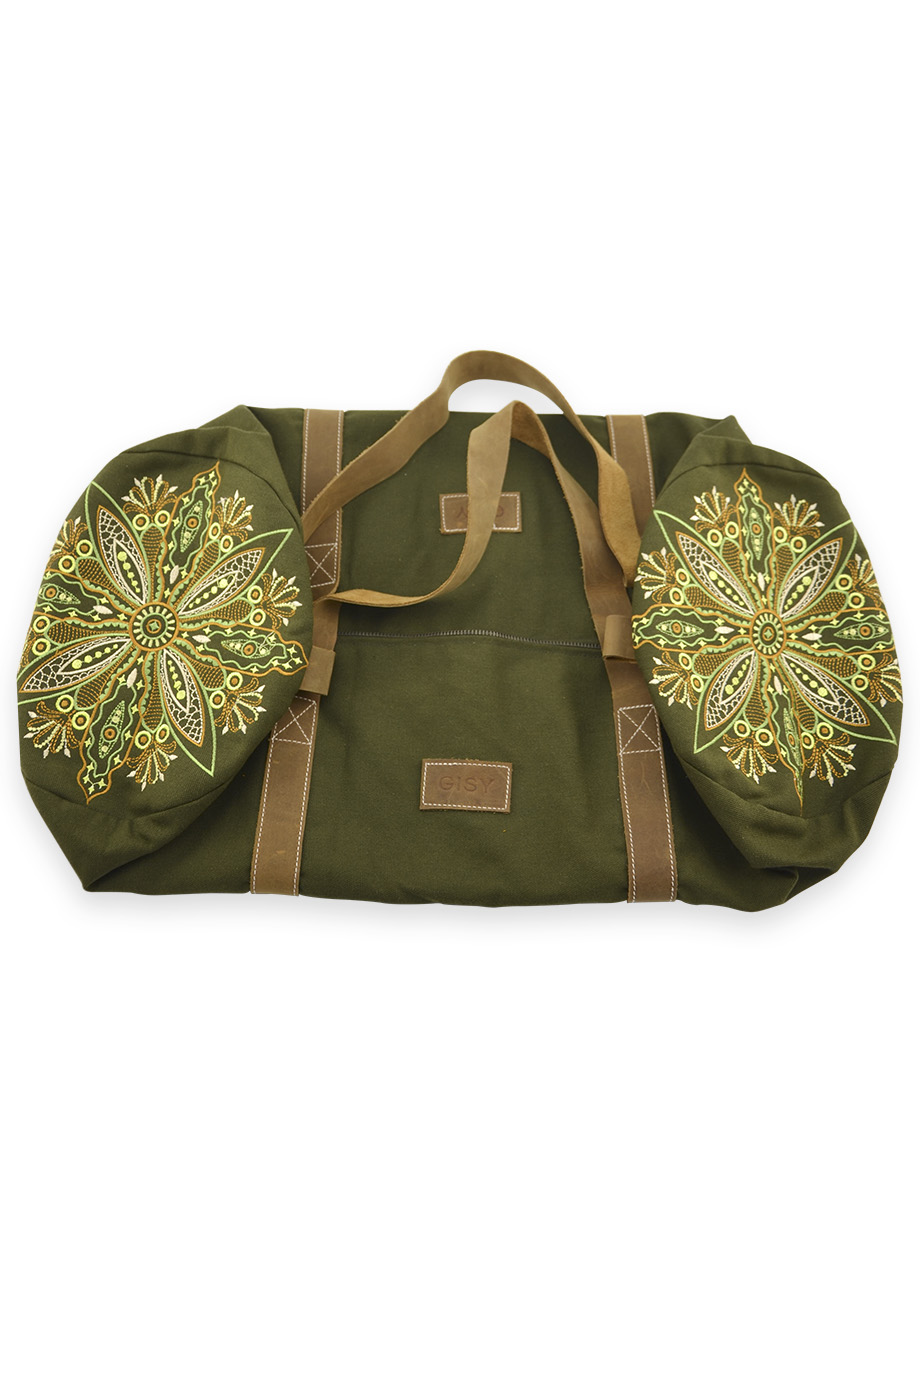 Túi du lịch Embroidered Canvas & Leather Barrel Bag 60x25D/Moss Green